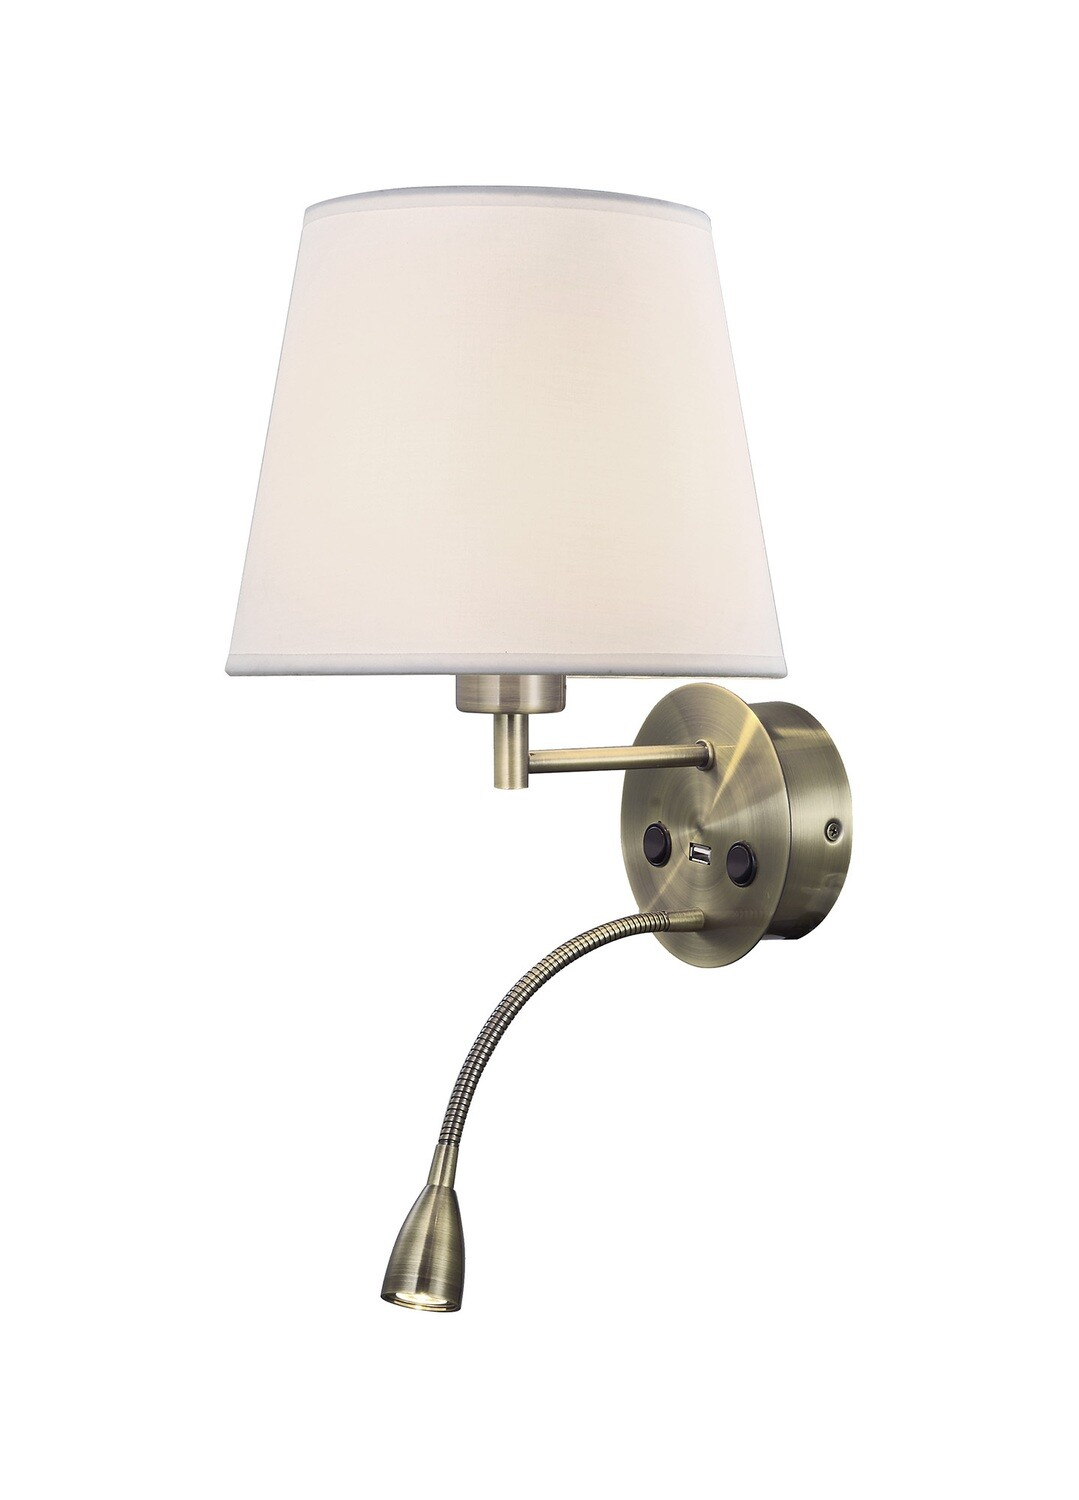 Caicos Wall + Reading Light with USB Charger, 1 x E27 + 3W LED, 3000K, 210lm LED, Individually Switched, Antique Brass